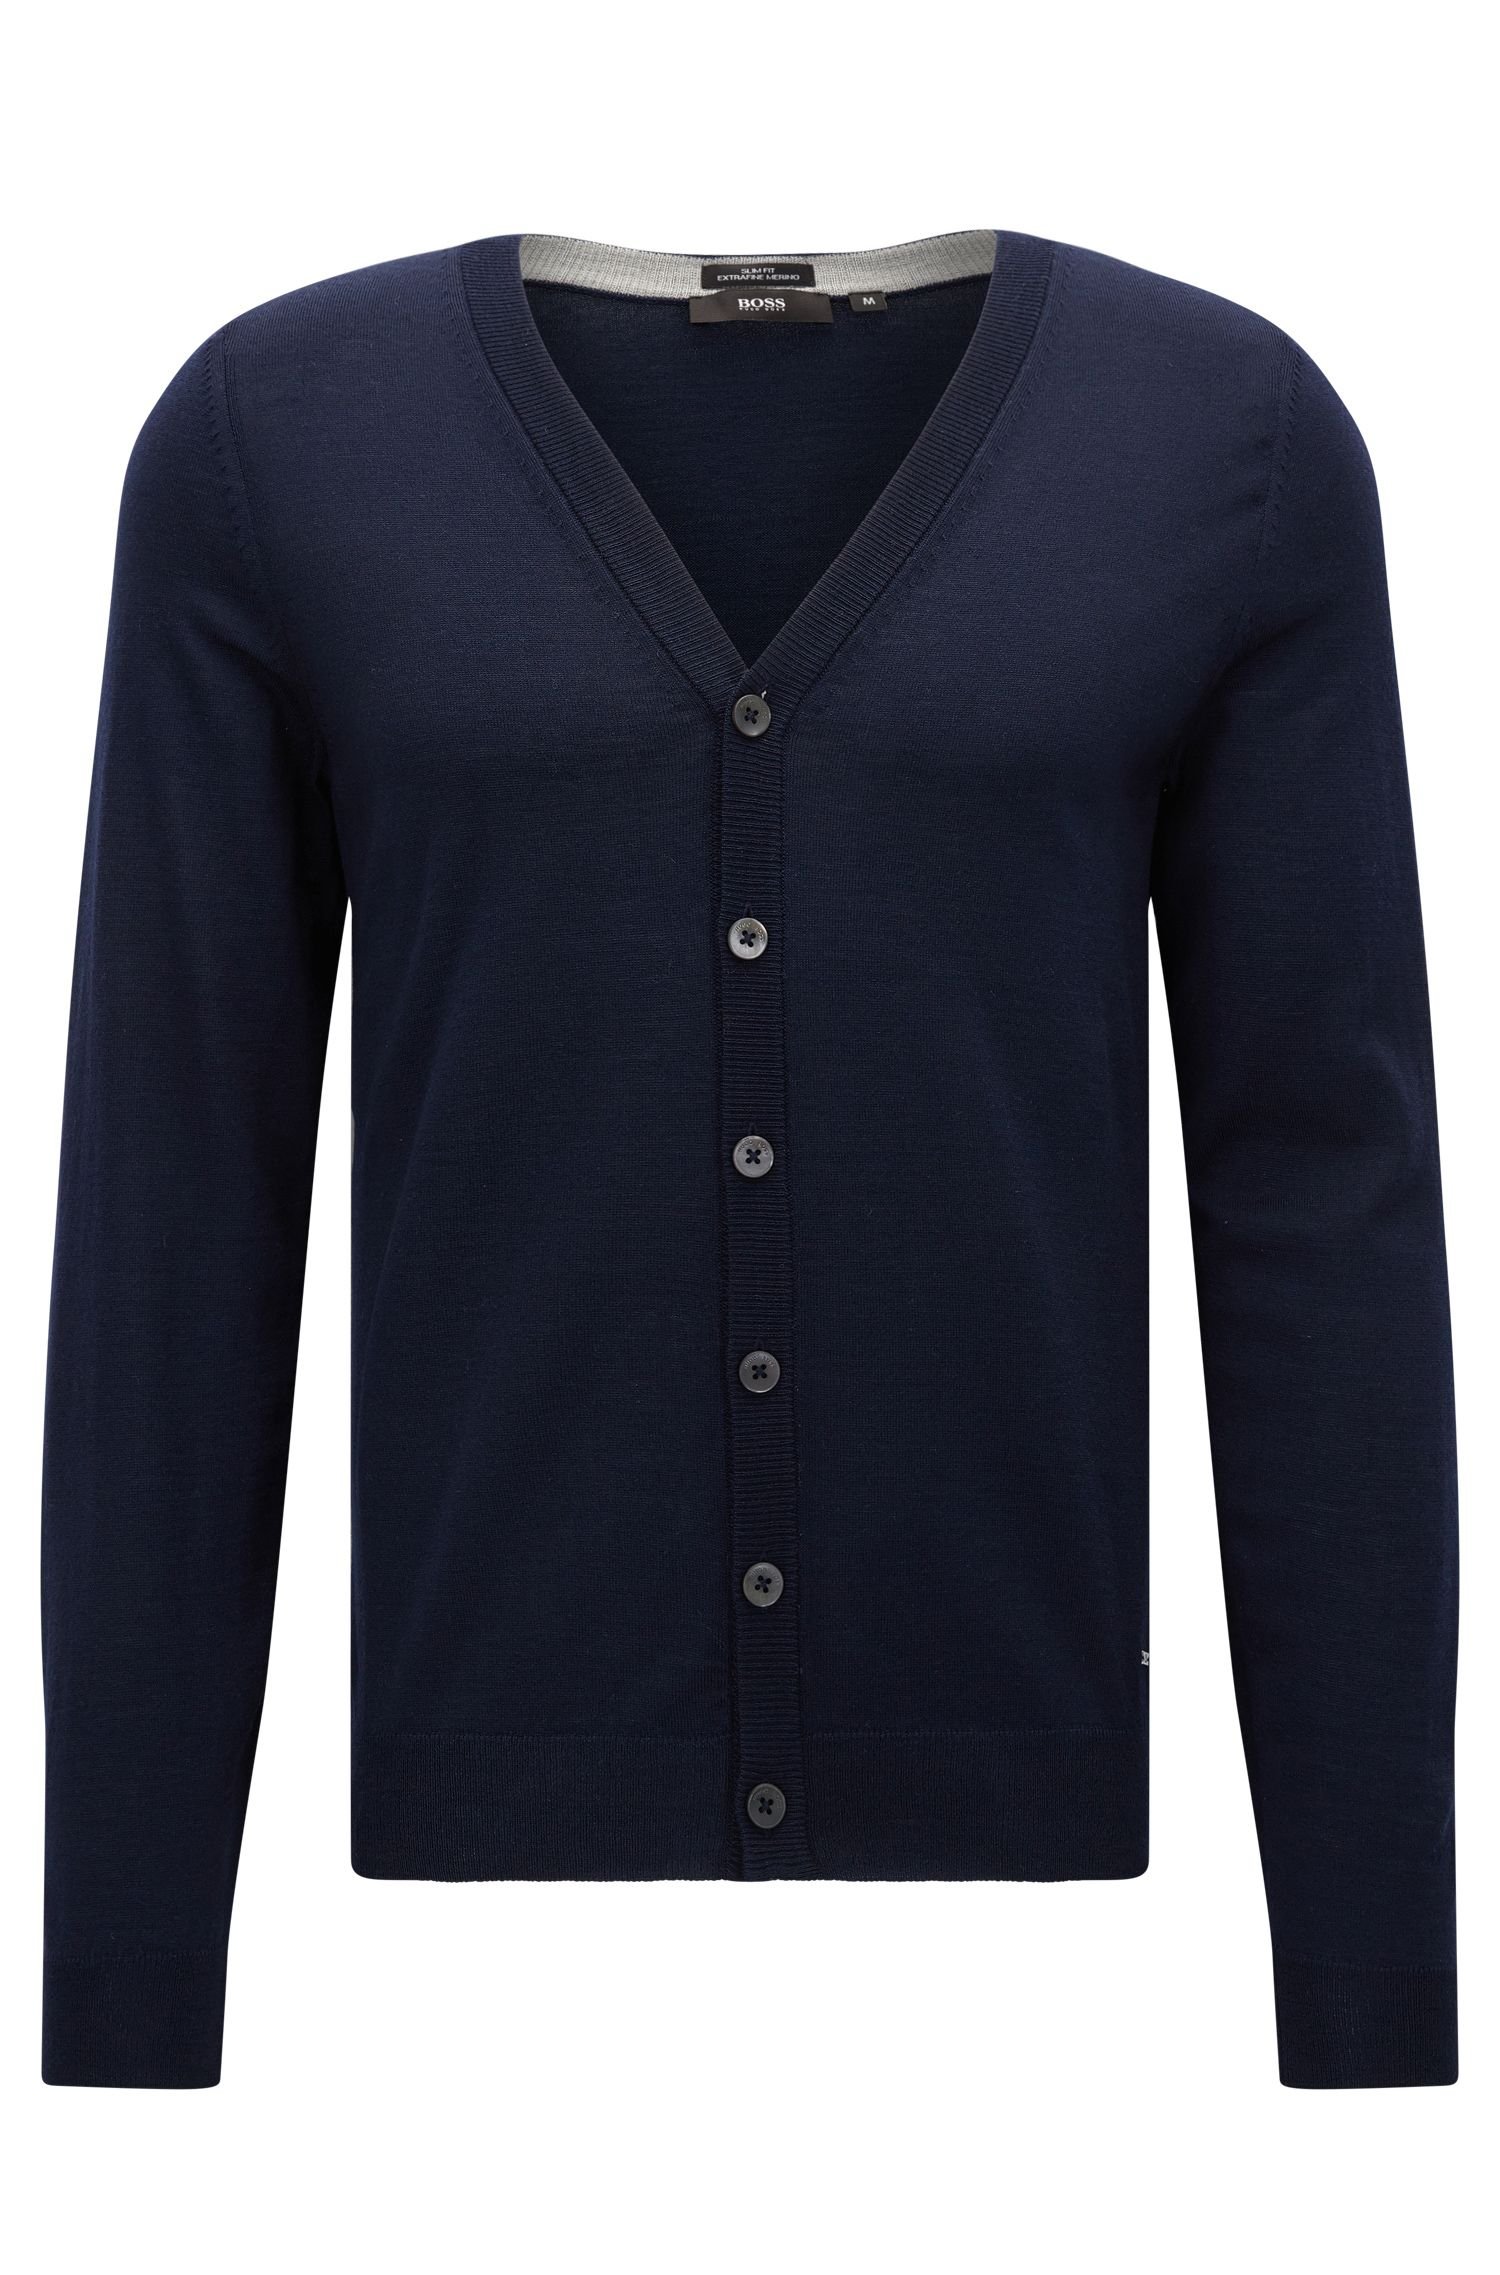 Extra-Fine Virgin Merino Wool Sweater, Slim FIt | Mardon M